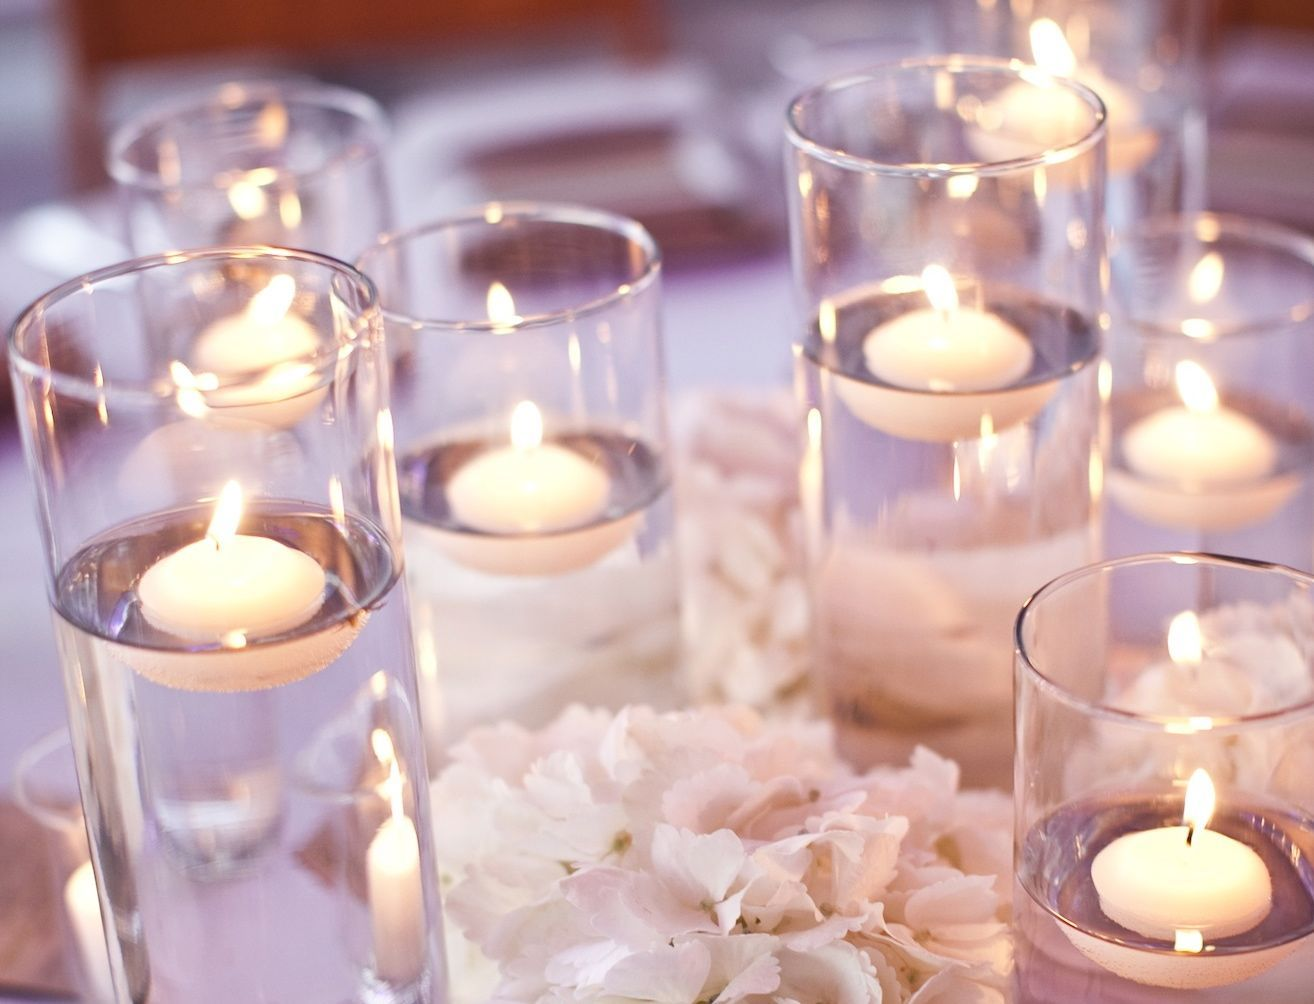 Skinny Cylinders With Gold Swirls And Floating Candles And